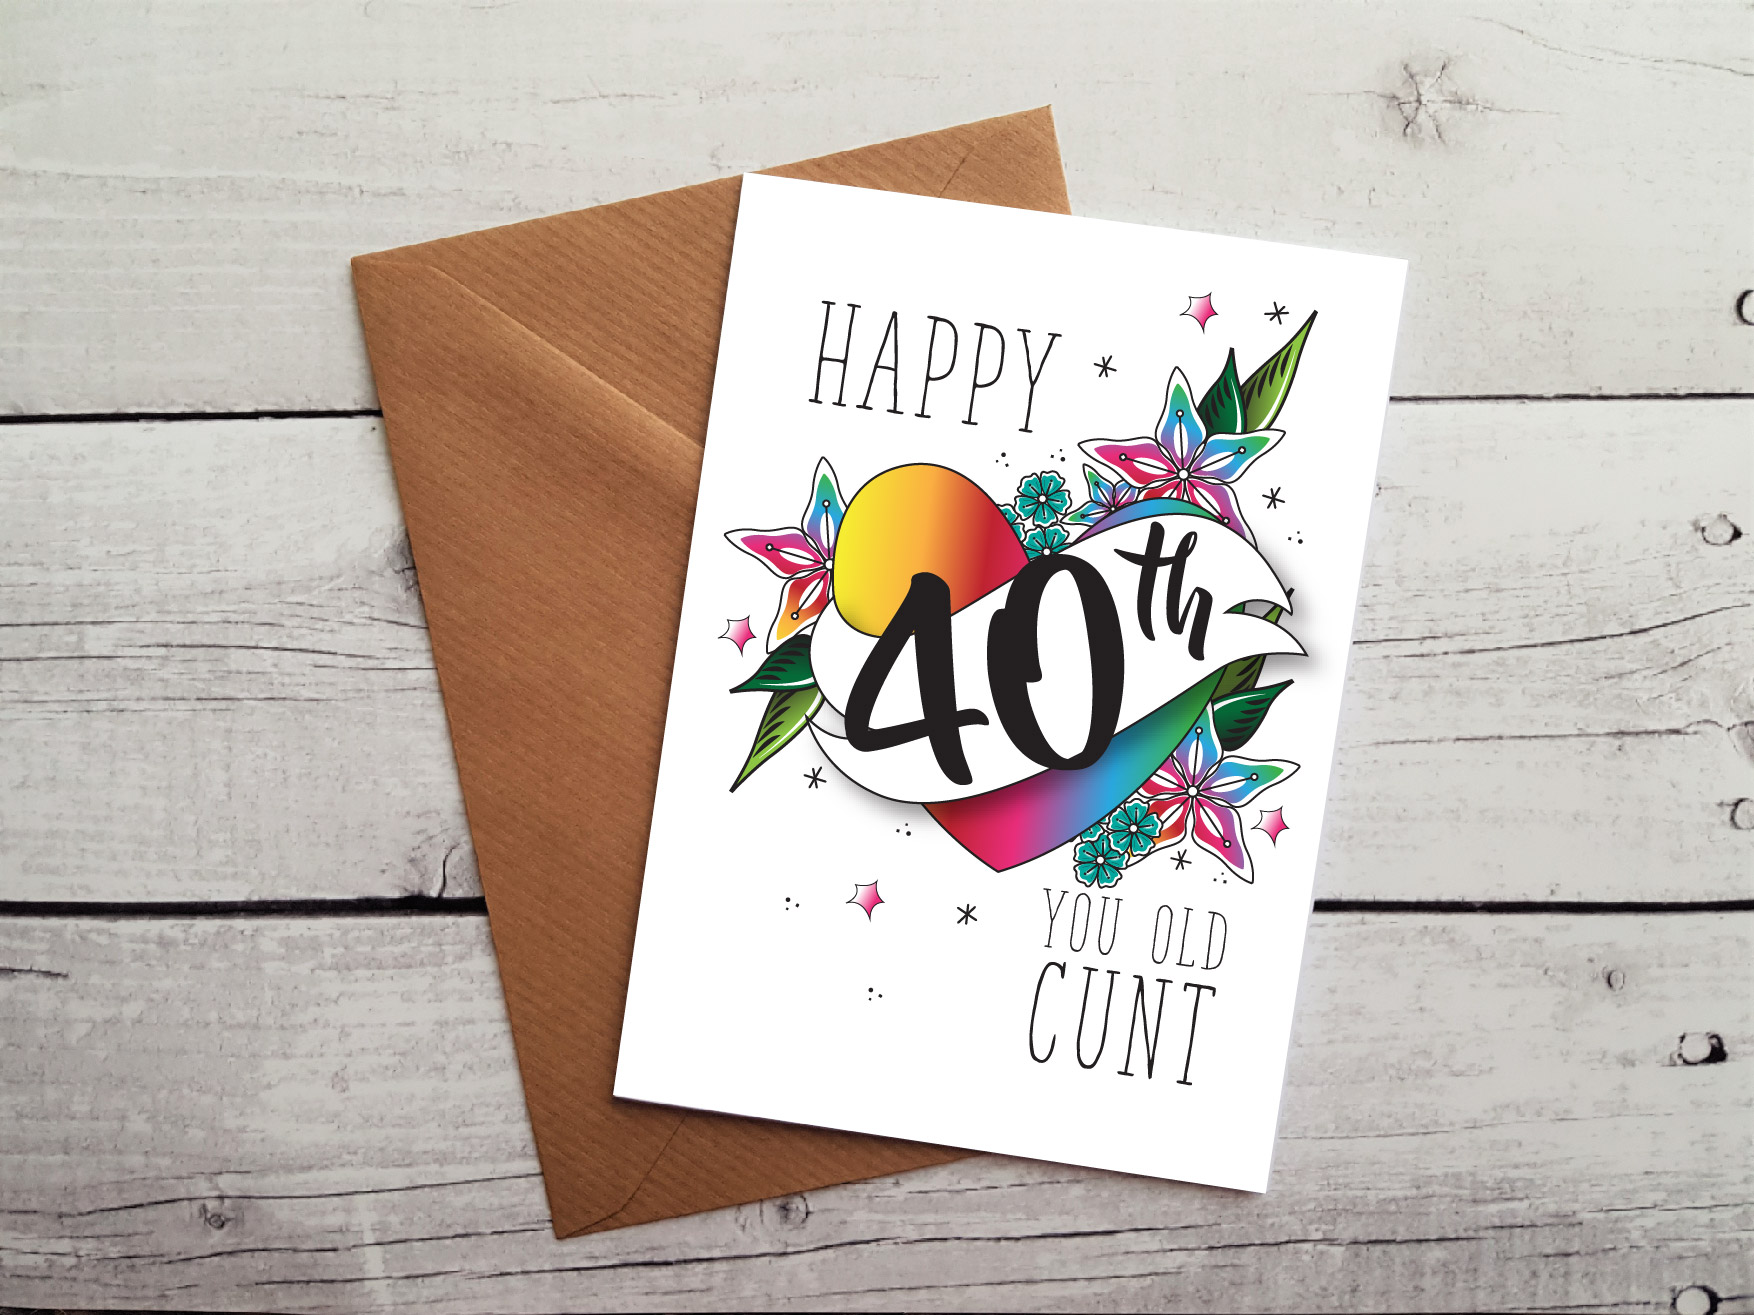 Insulting 40th birthday card happy 40th you old cunt occasion card insulting 40th birthday card by beautifully obscene m4hsunfo